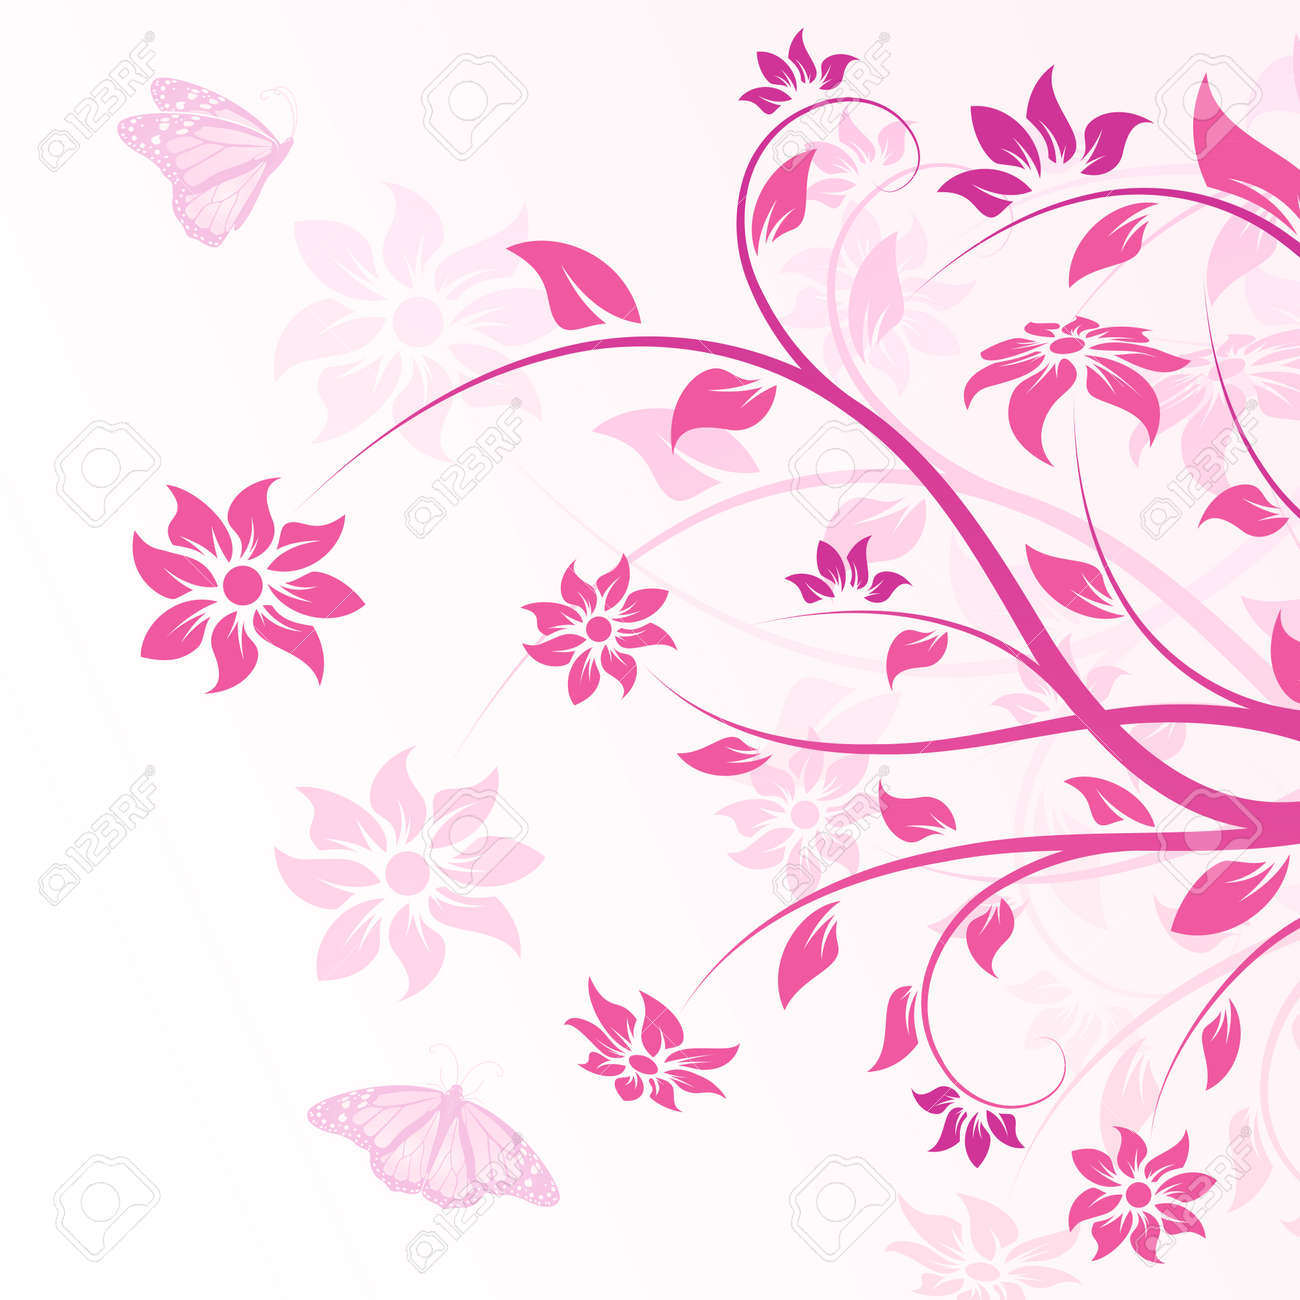 Pink butterfly vector background hd wallpapers pink butterfly vector - Abstract Background With Flowers And Butterfly For Your Design Stock Vector 7448500